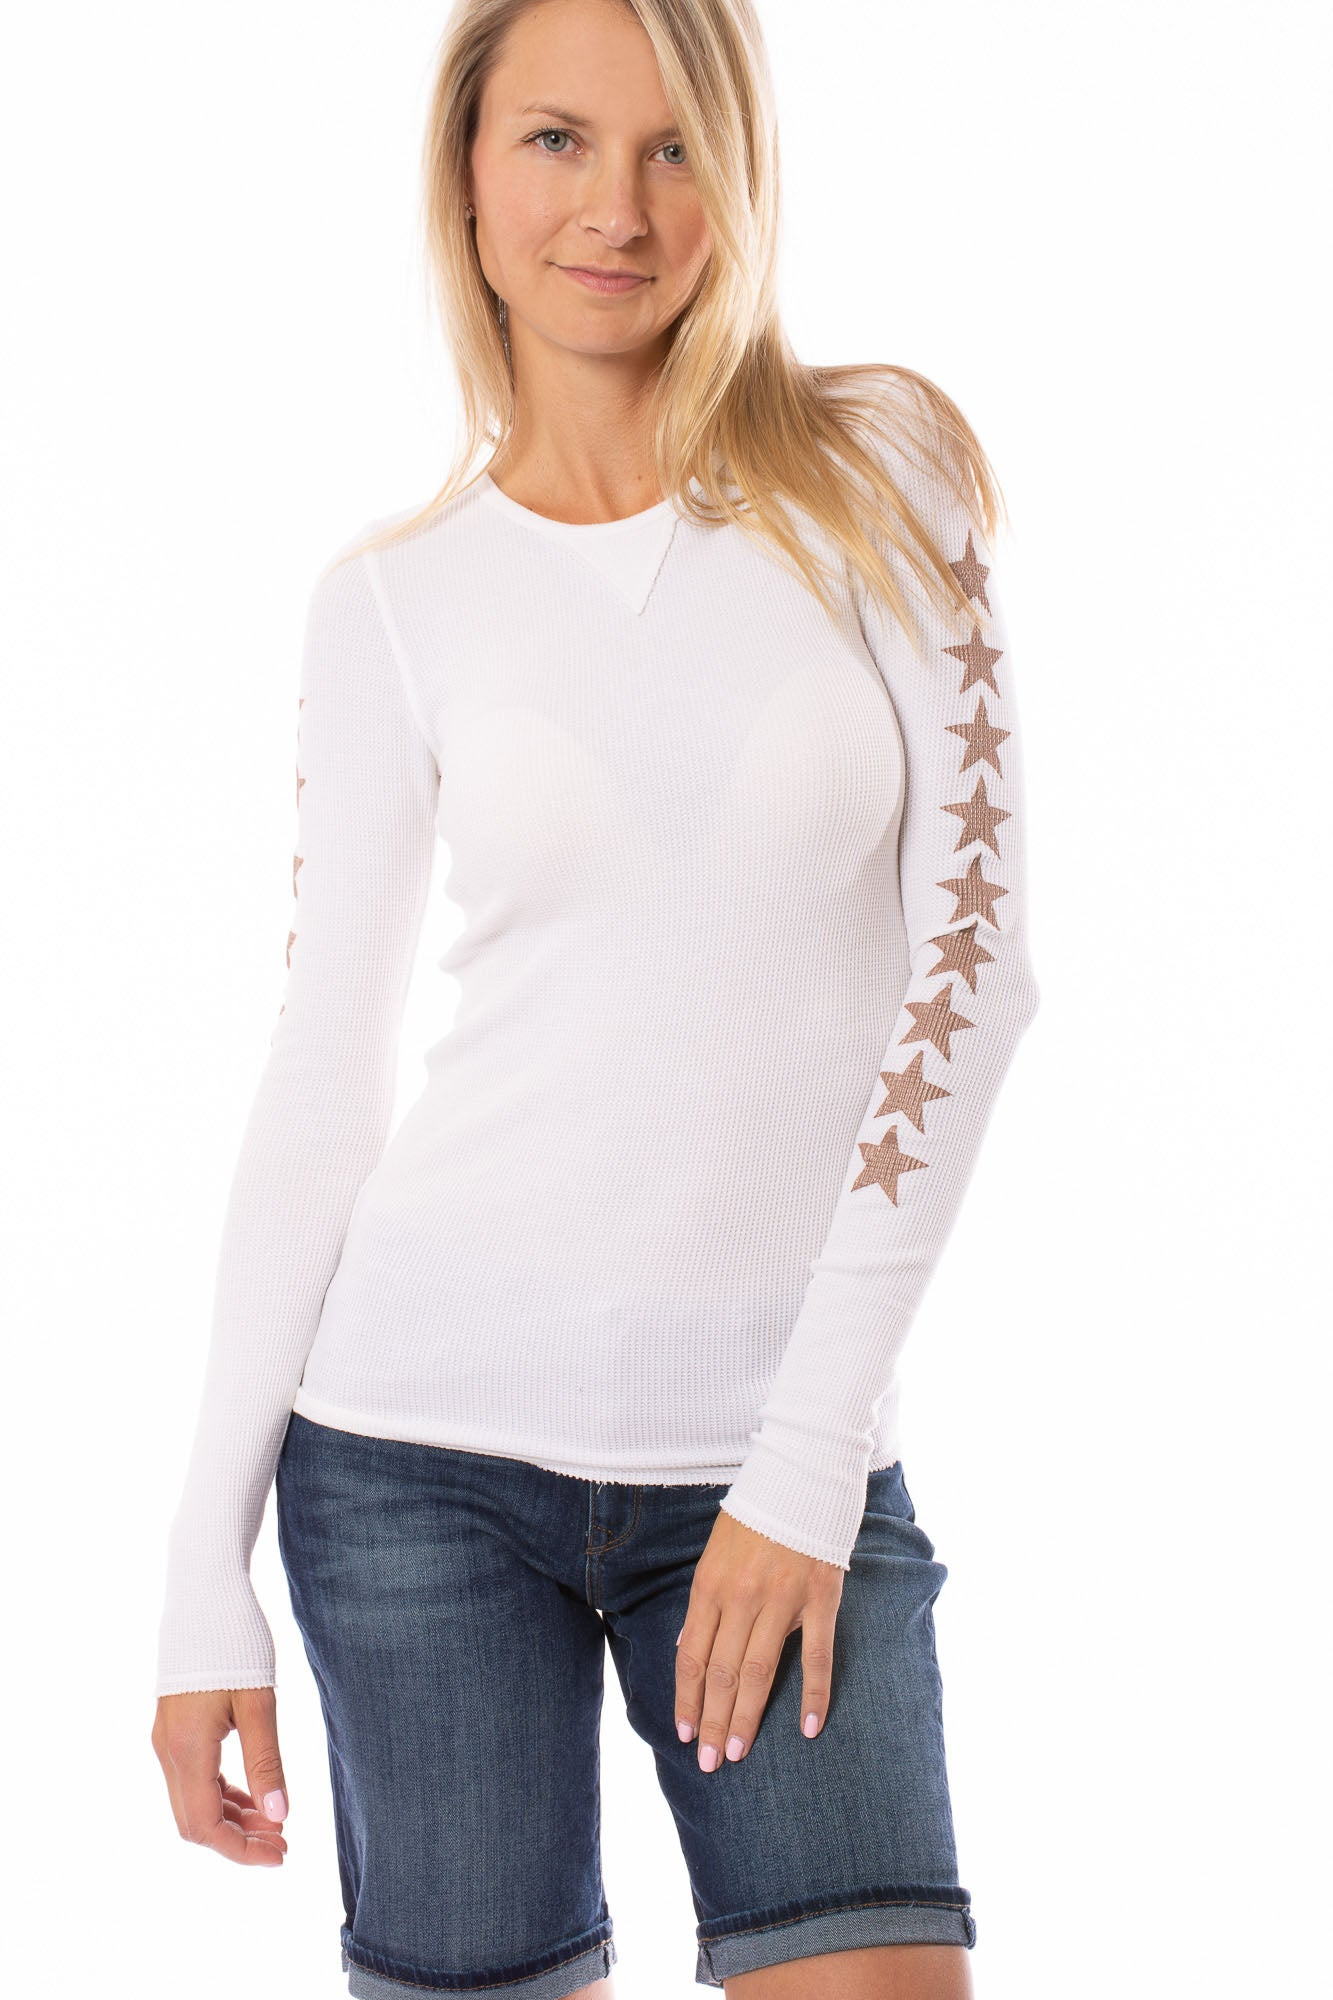 Hard Tail Forever - Vintage Thermal W/Stars (TH-28-507, Cream w/Rose Gold Stars)